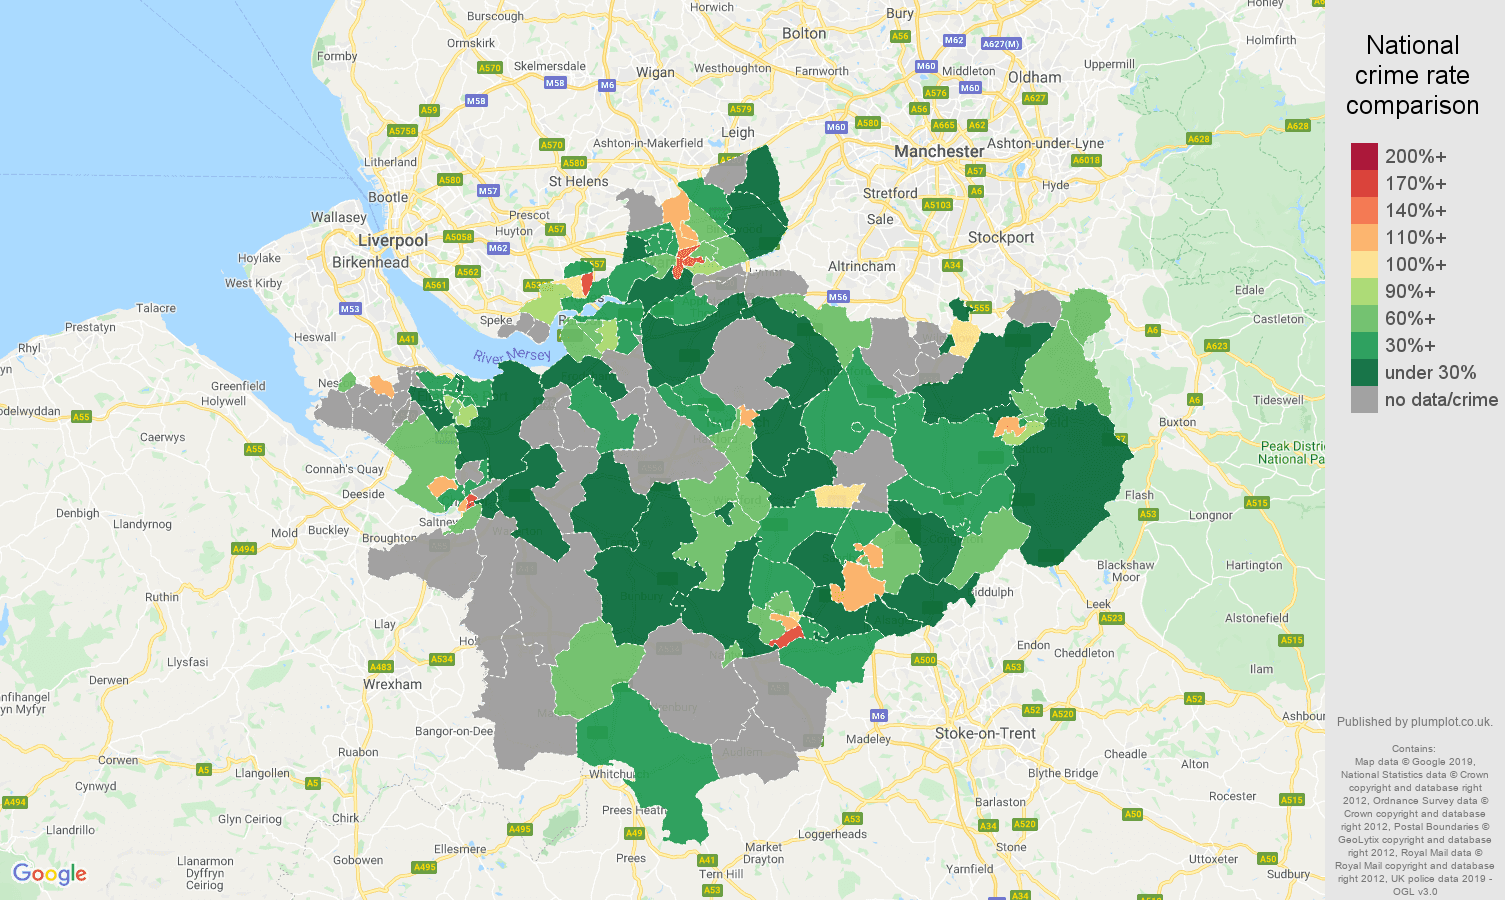 Cheshire possession of weapons crime rate comparison map